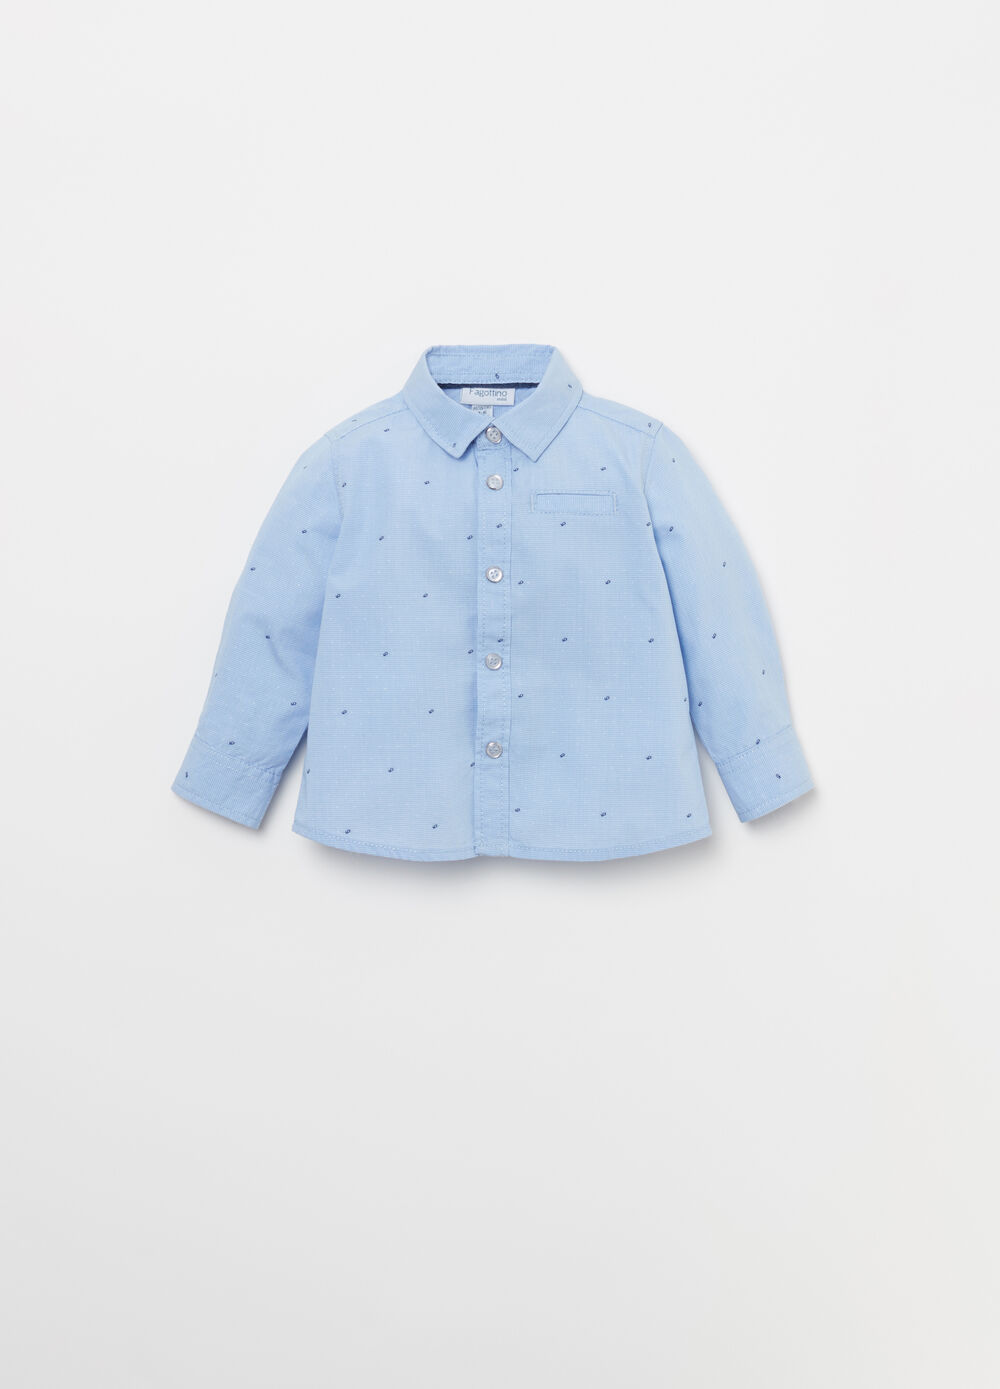 Yarn-dyed poplin shirt with embroidery